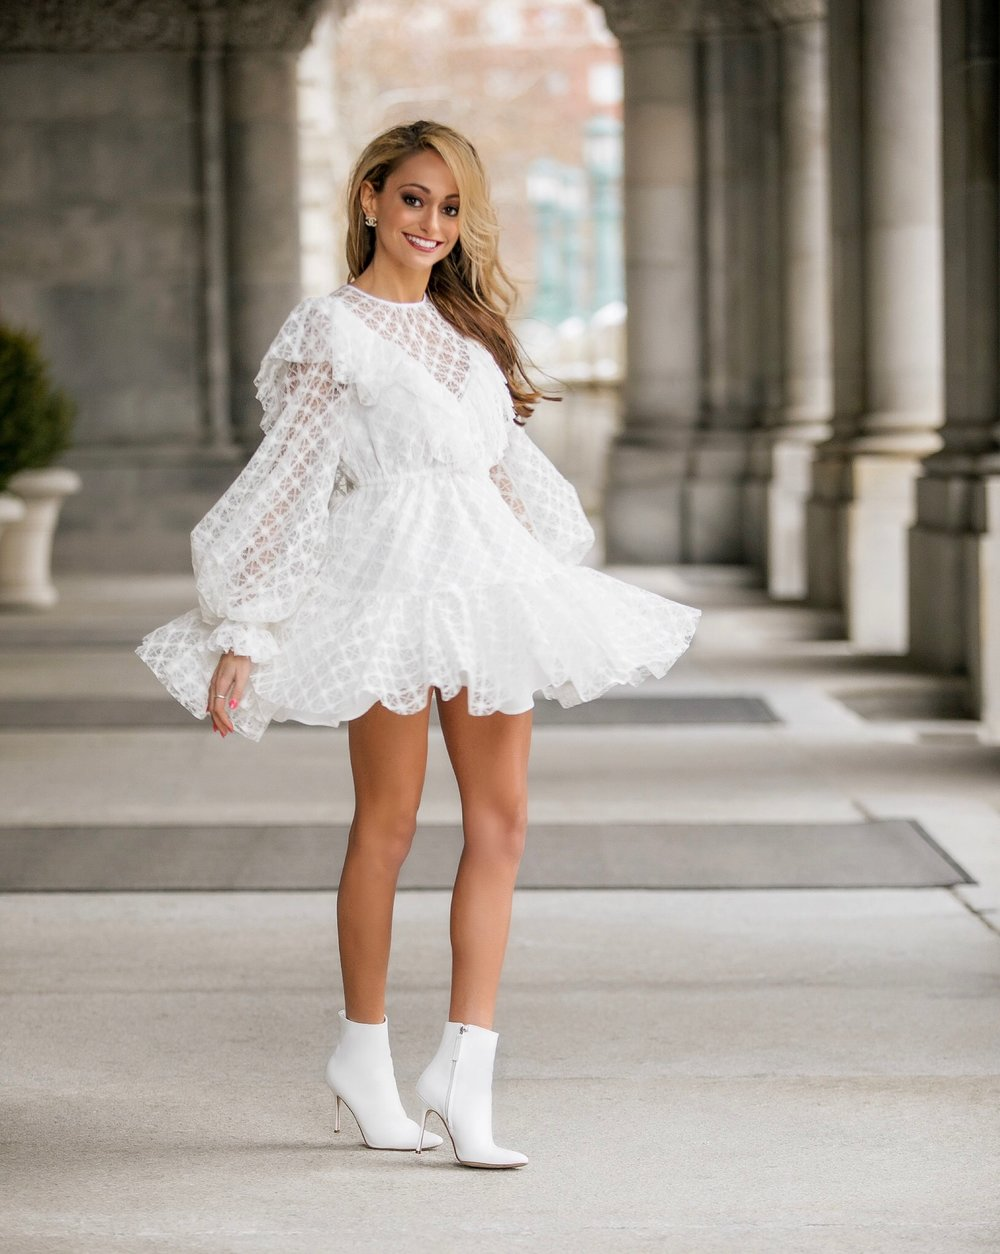 white lace dress by Milly and white Manolo Blank booties